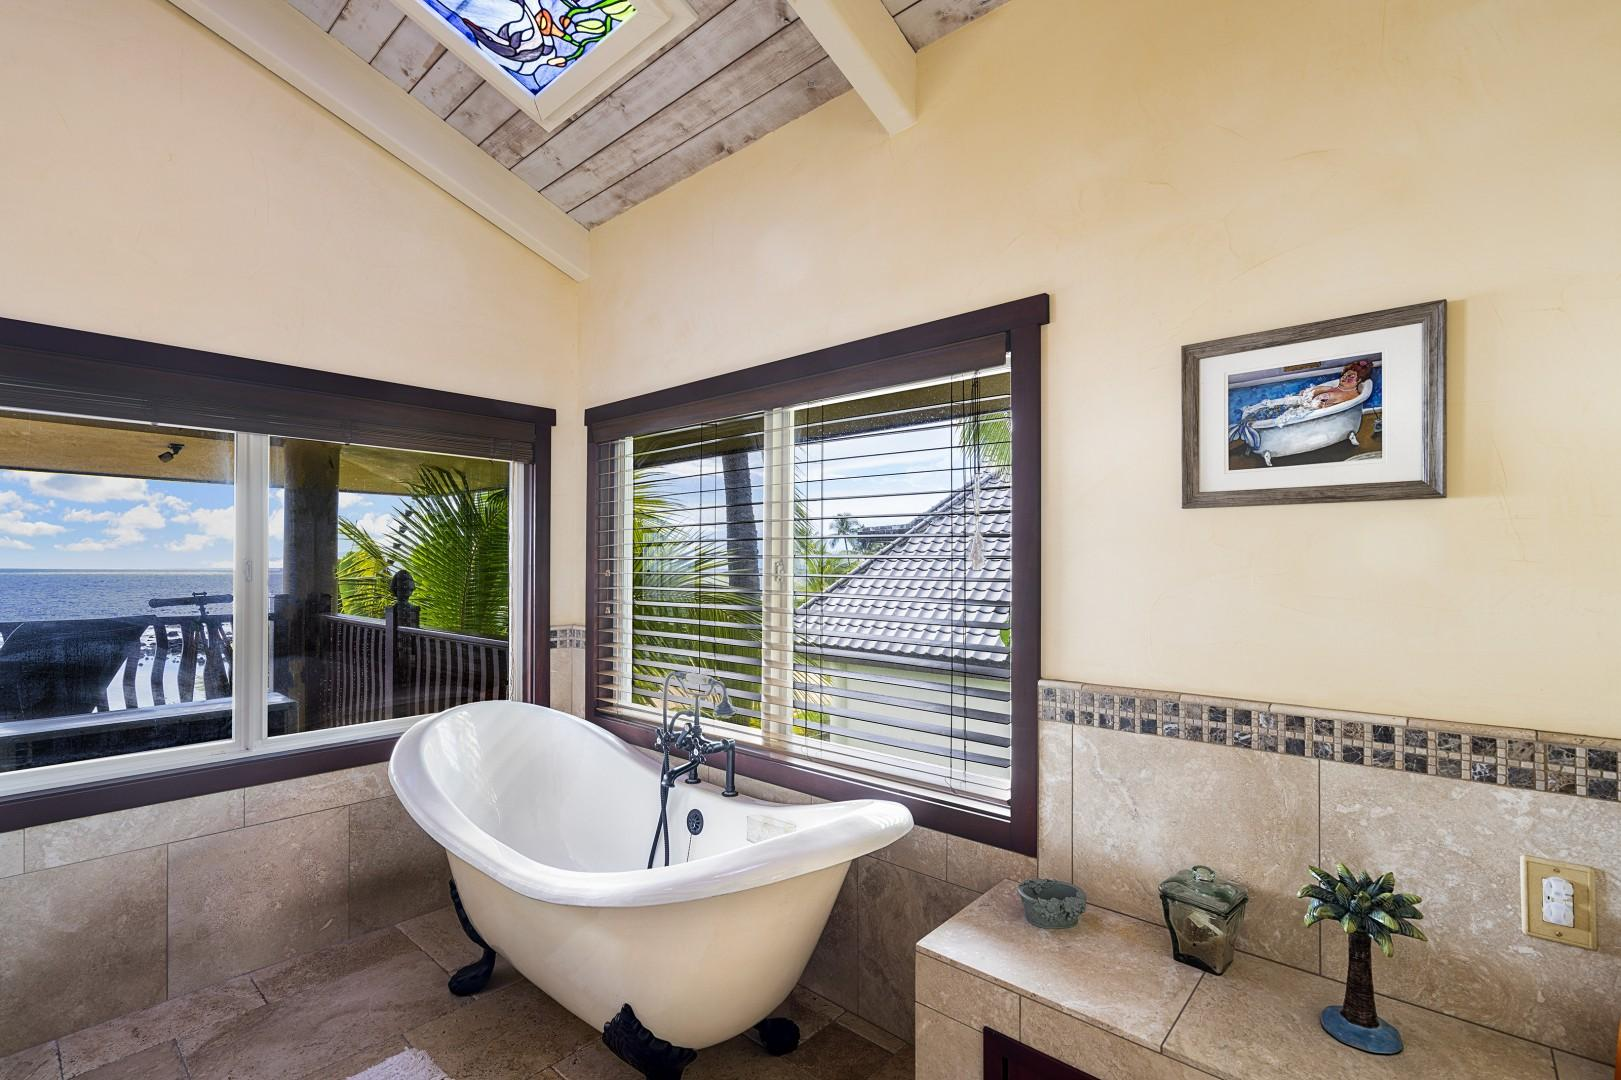 Clawfoot tub with a view!